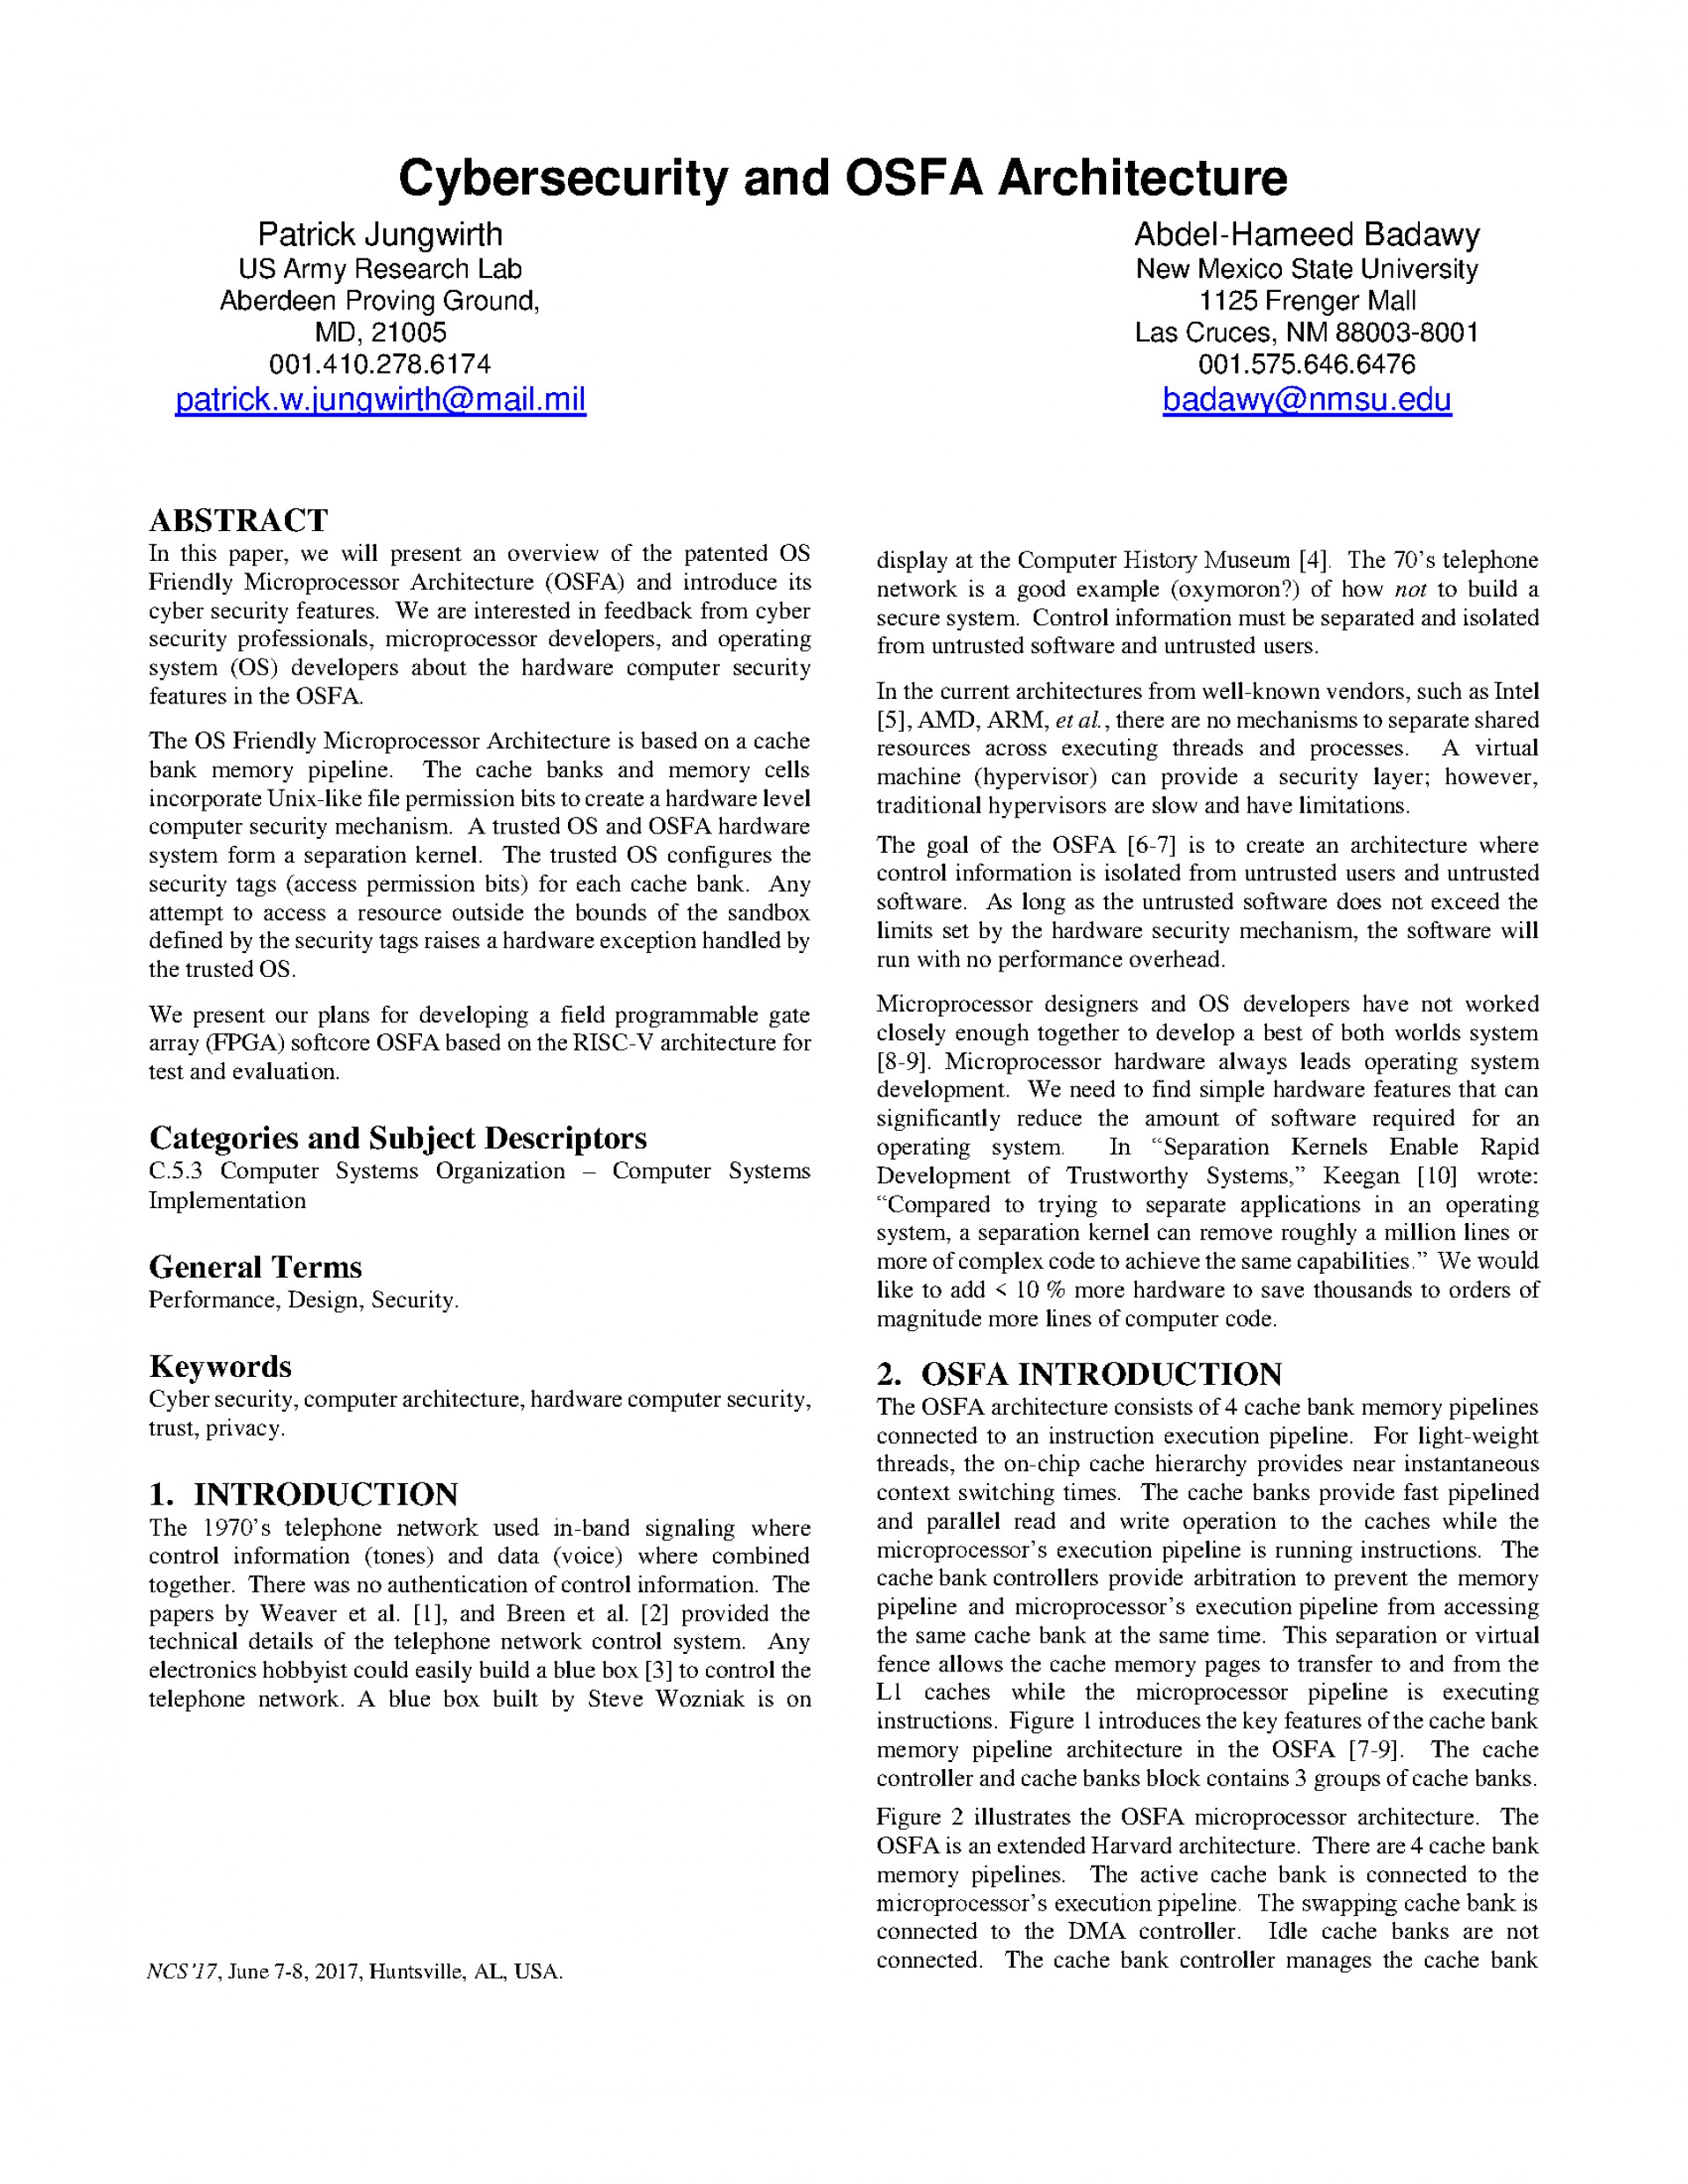 008 Cyber Security Research Papers Pdf Paper Wondrous 2017 1920